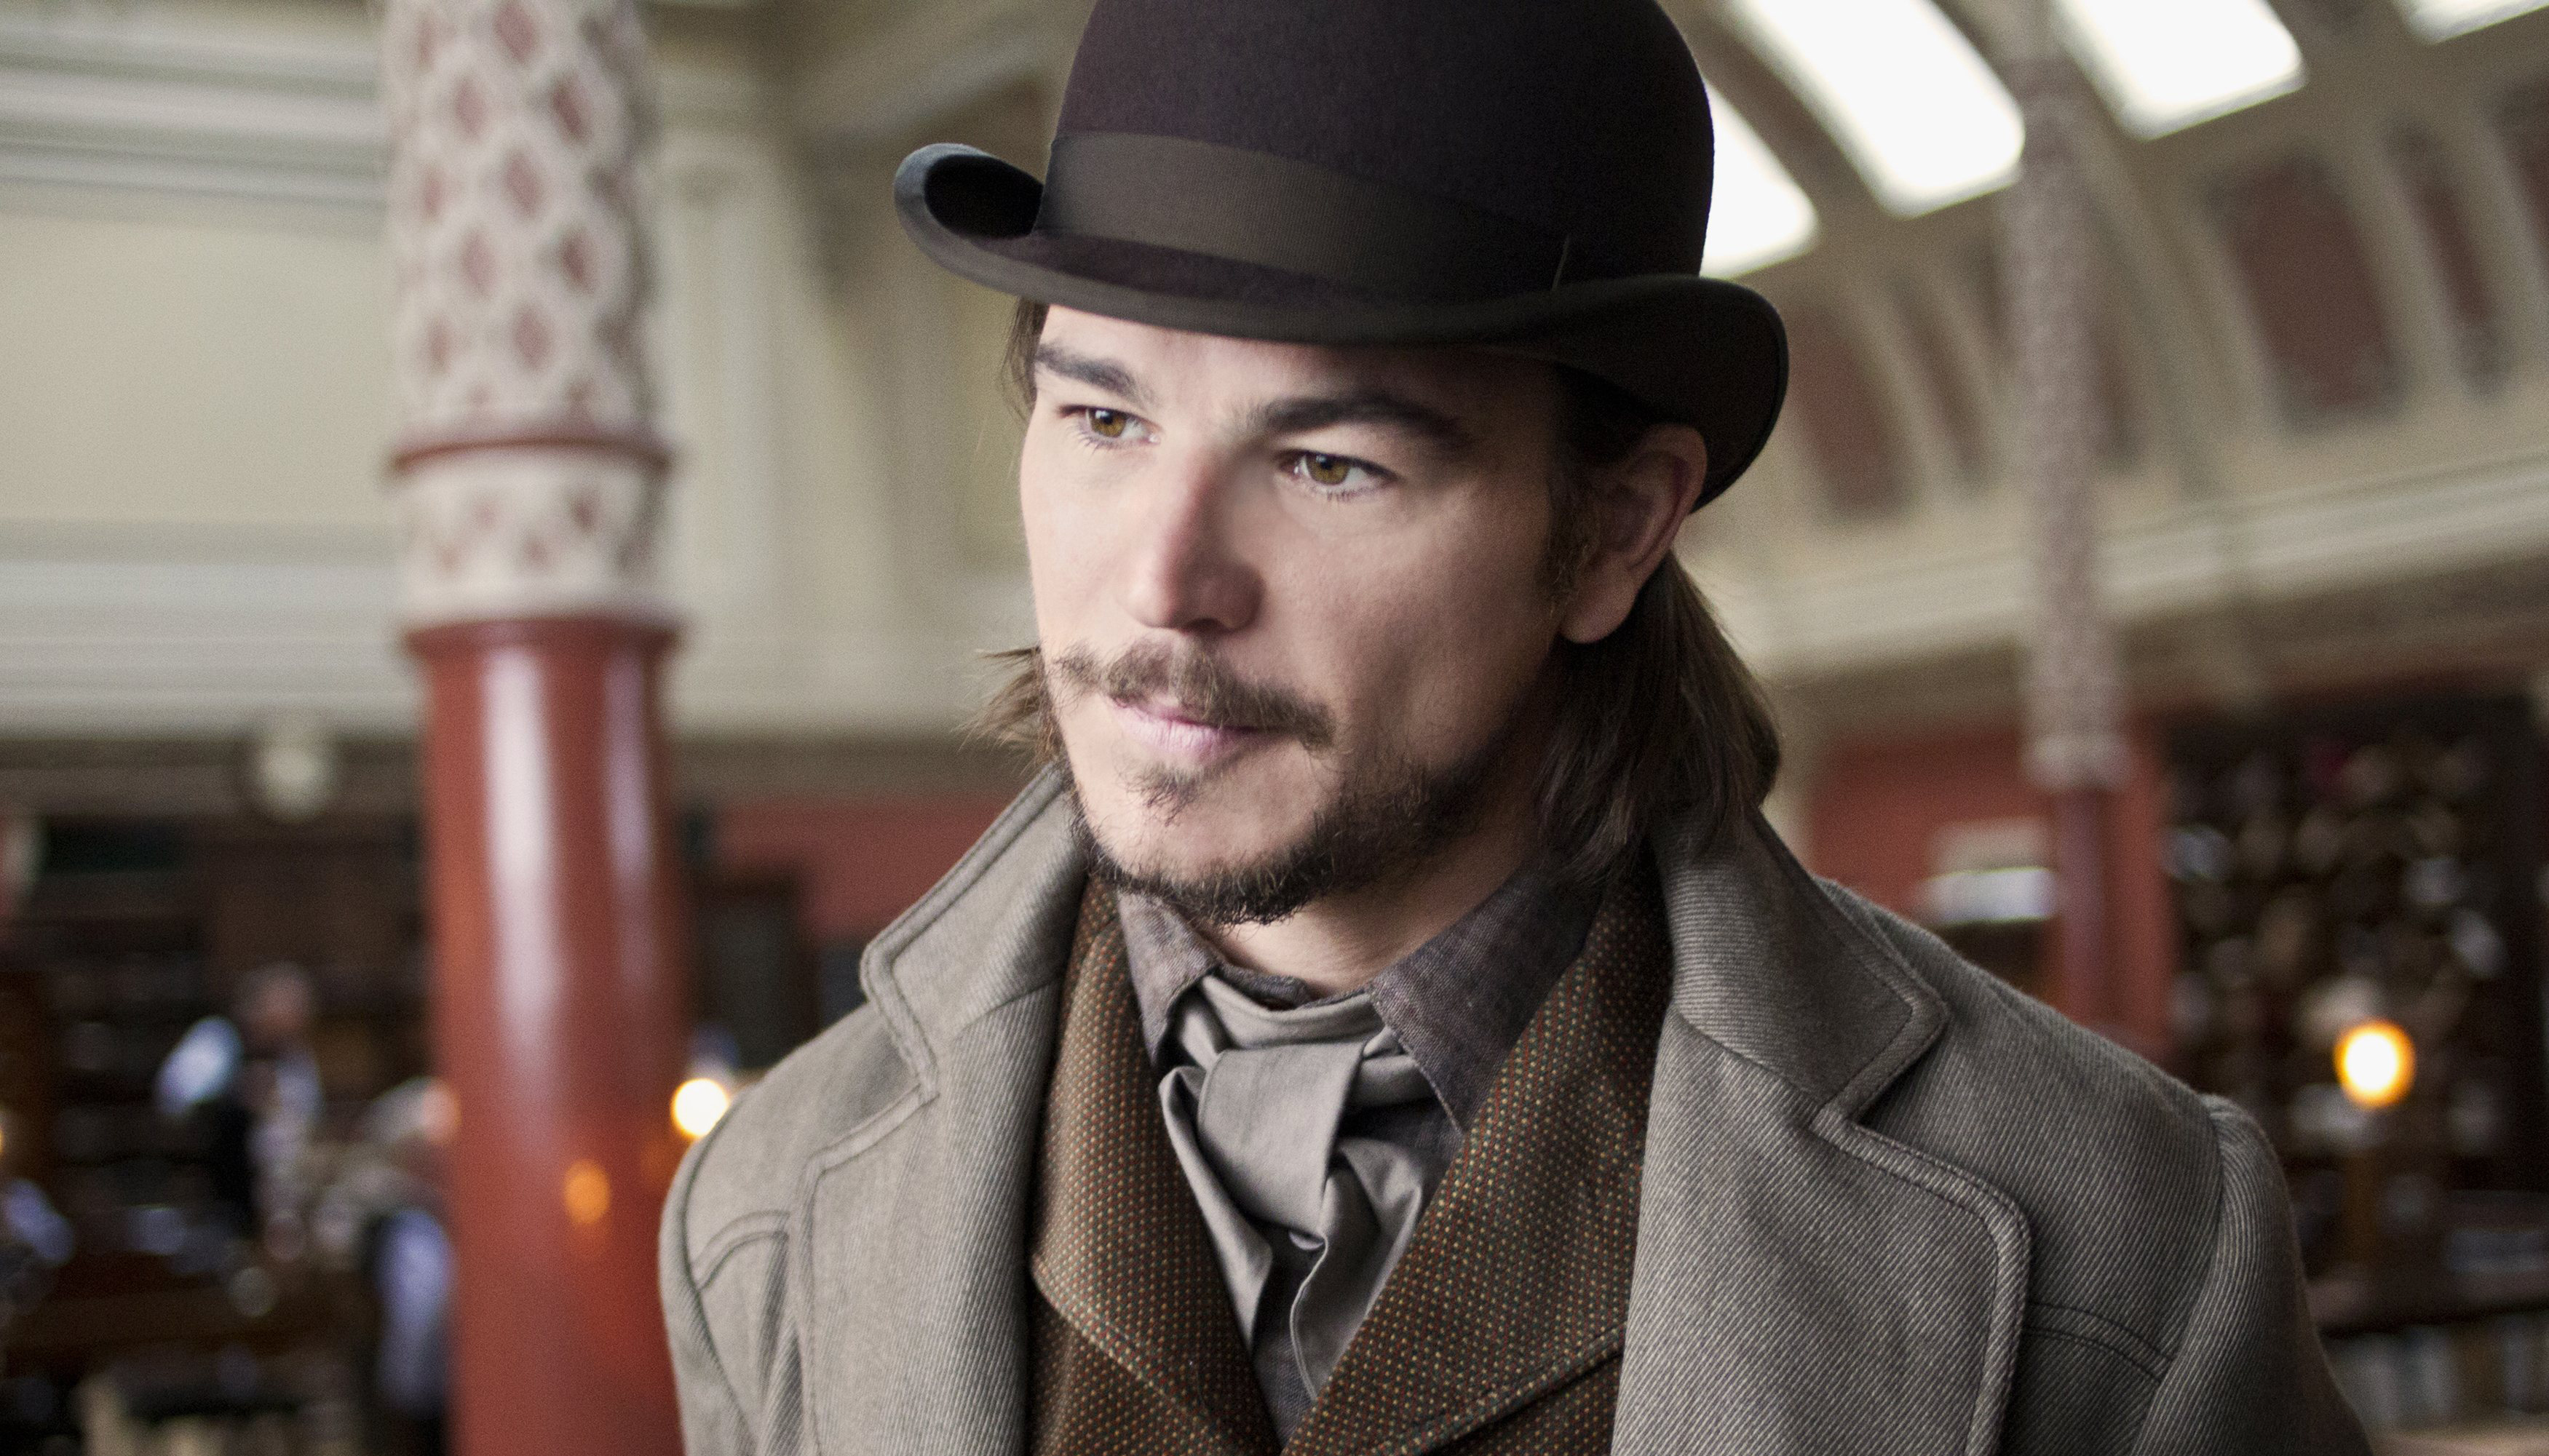 Josh Hartnett naked and showing off his butt in the Showtime series Penny Dreadful.